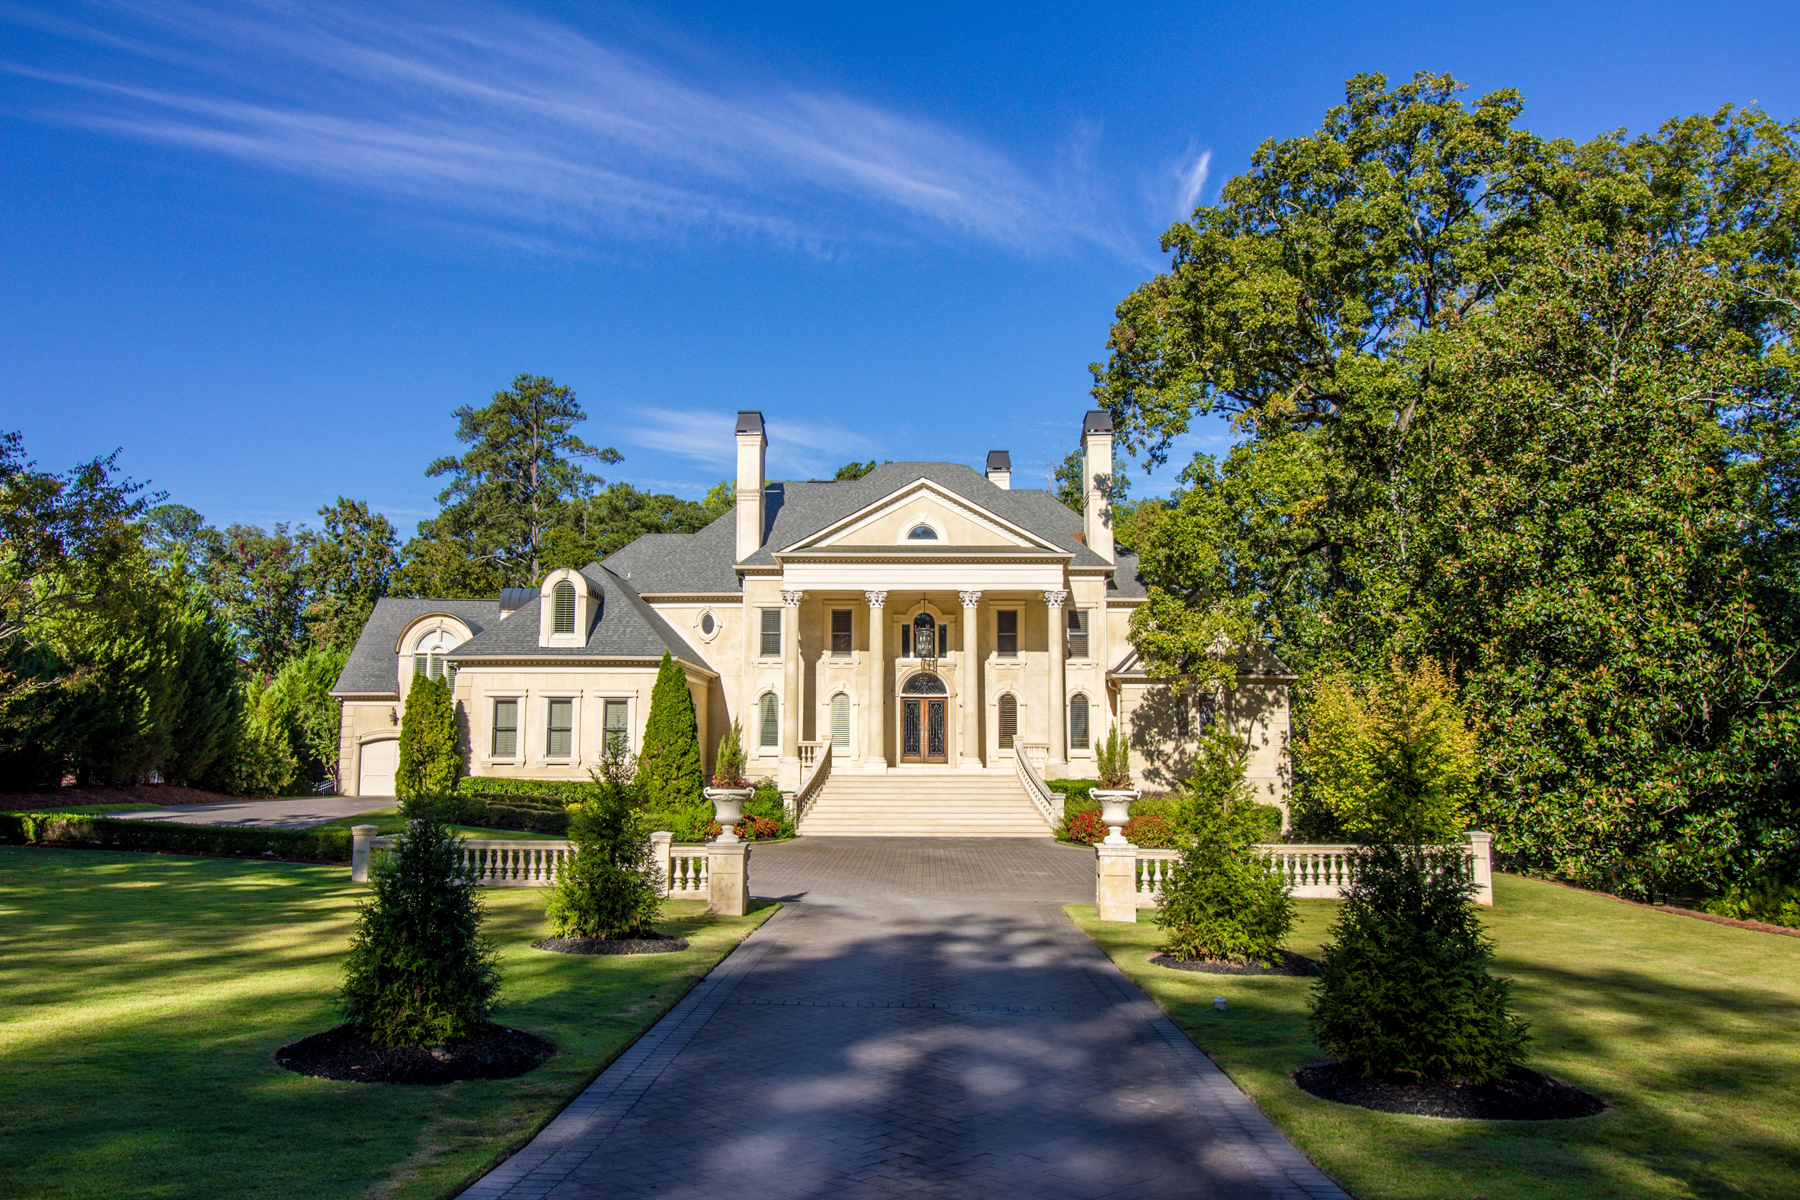 独户住宅 为 销售 在 Incomparable Neoclassical Estate In The Heart Of Buckhead 1495 Mount Paran Road NW Buckhead, 亚特兰大, 乔治亚州, 30327 美国